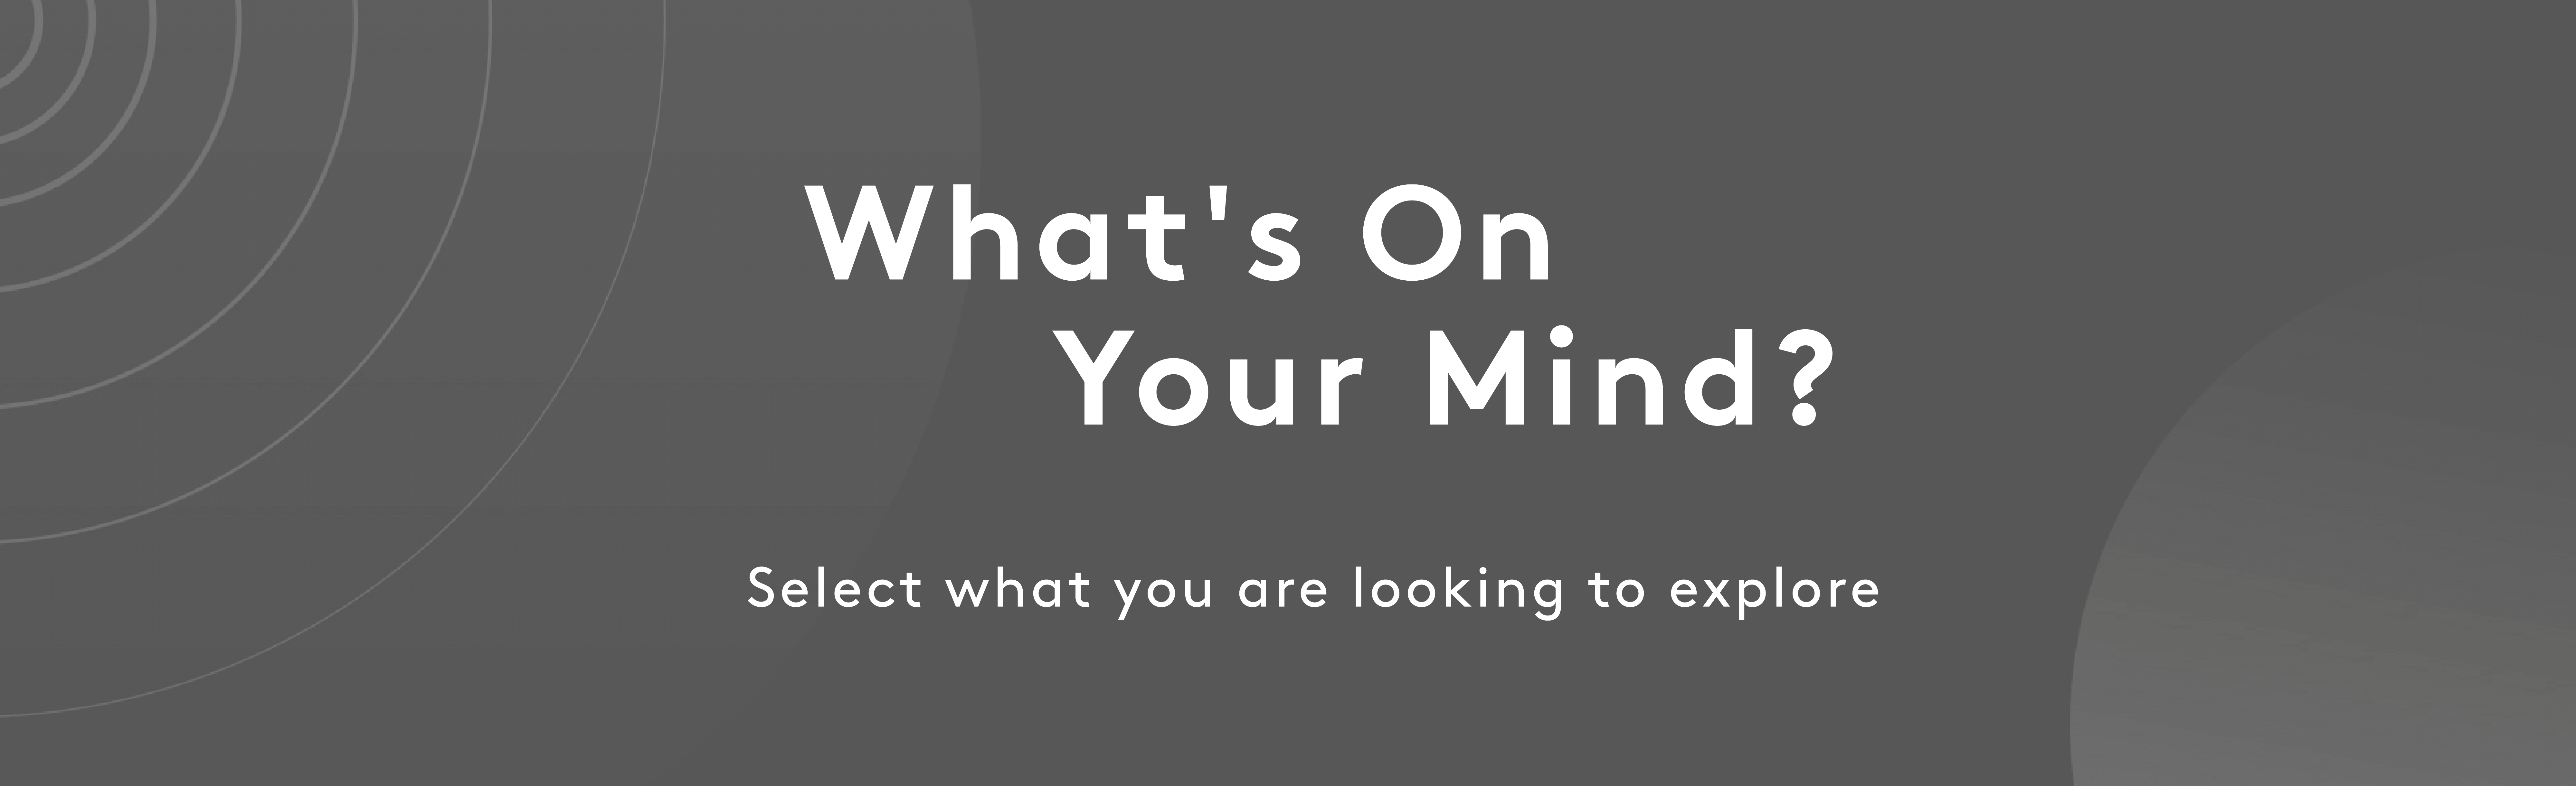 What's on your mind? | Myvitamins